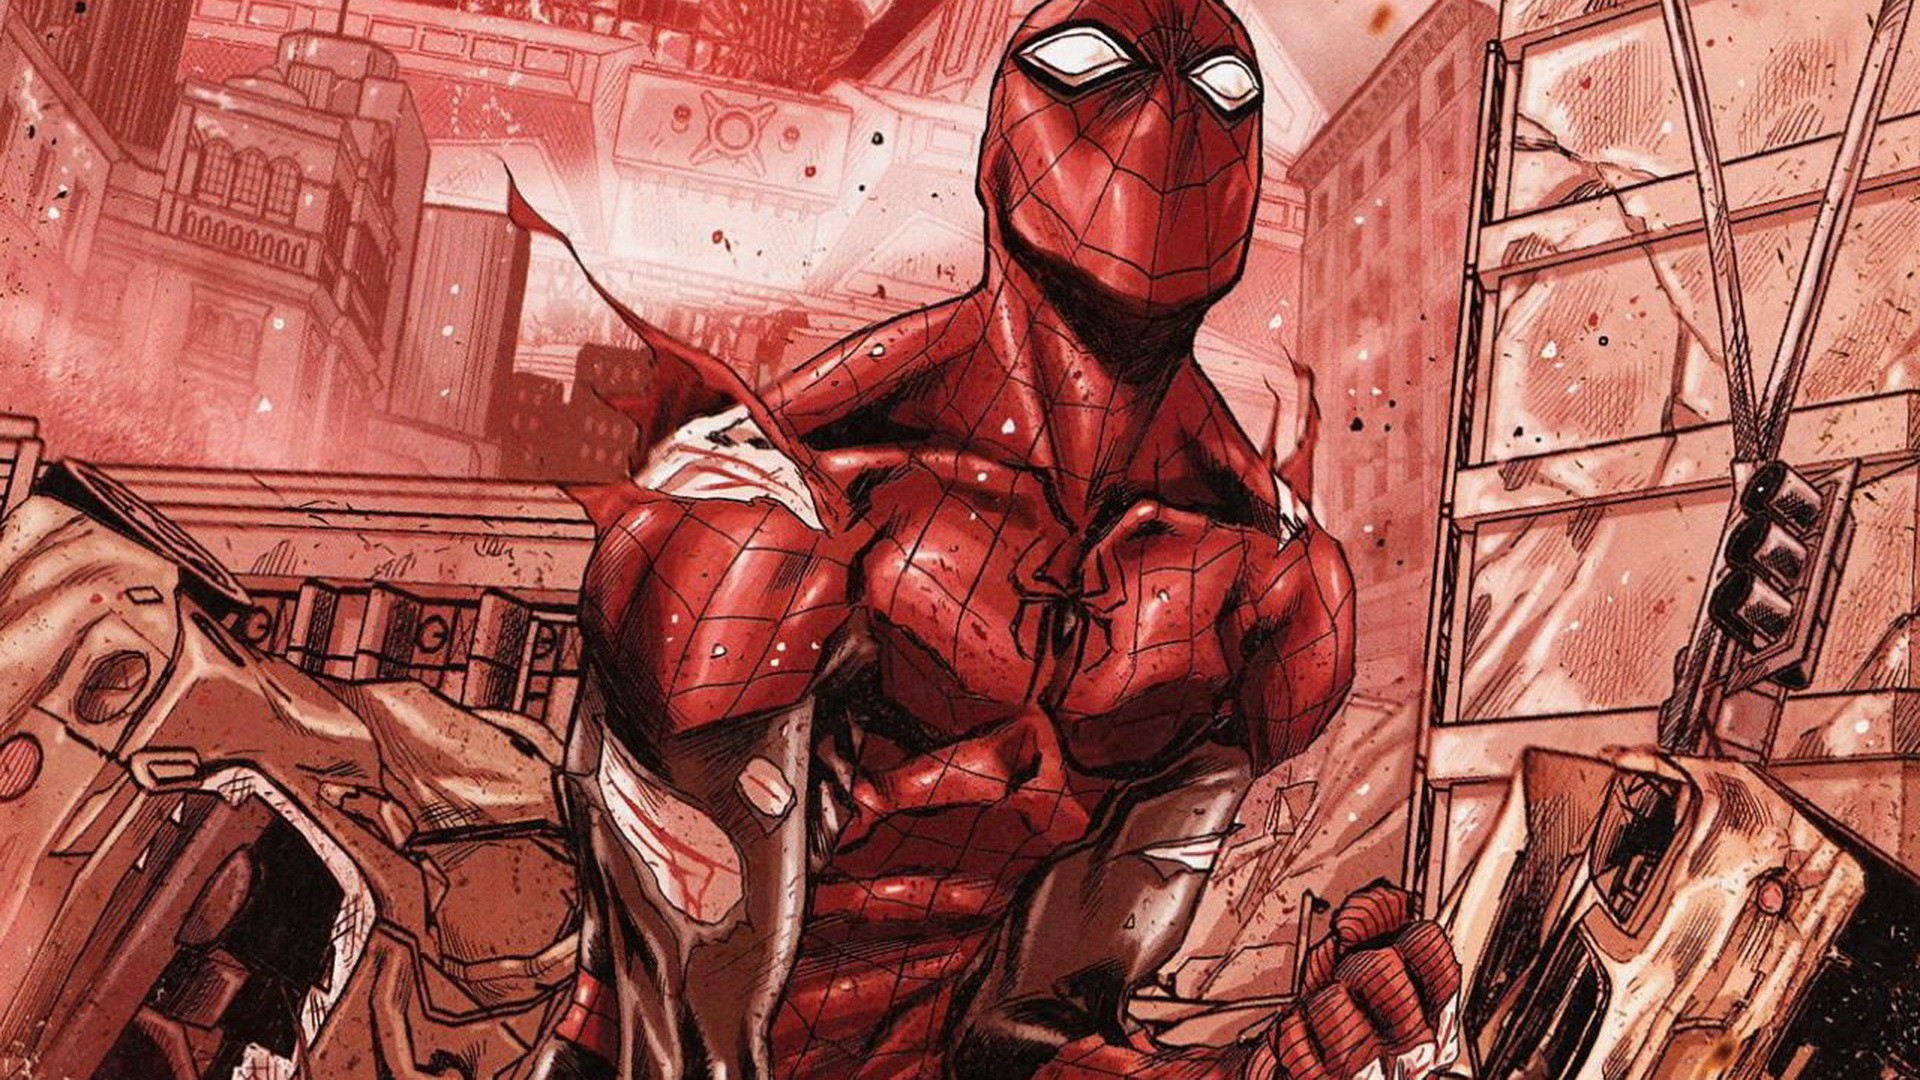 The Superior Spider Man Hd Wallpaper Background Image 1920x1080